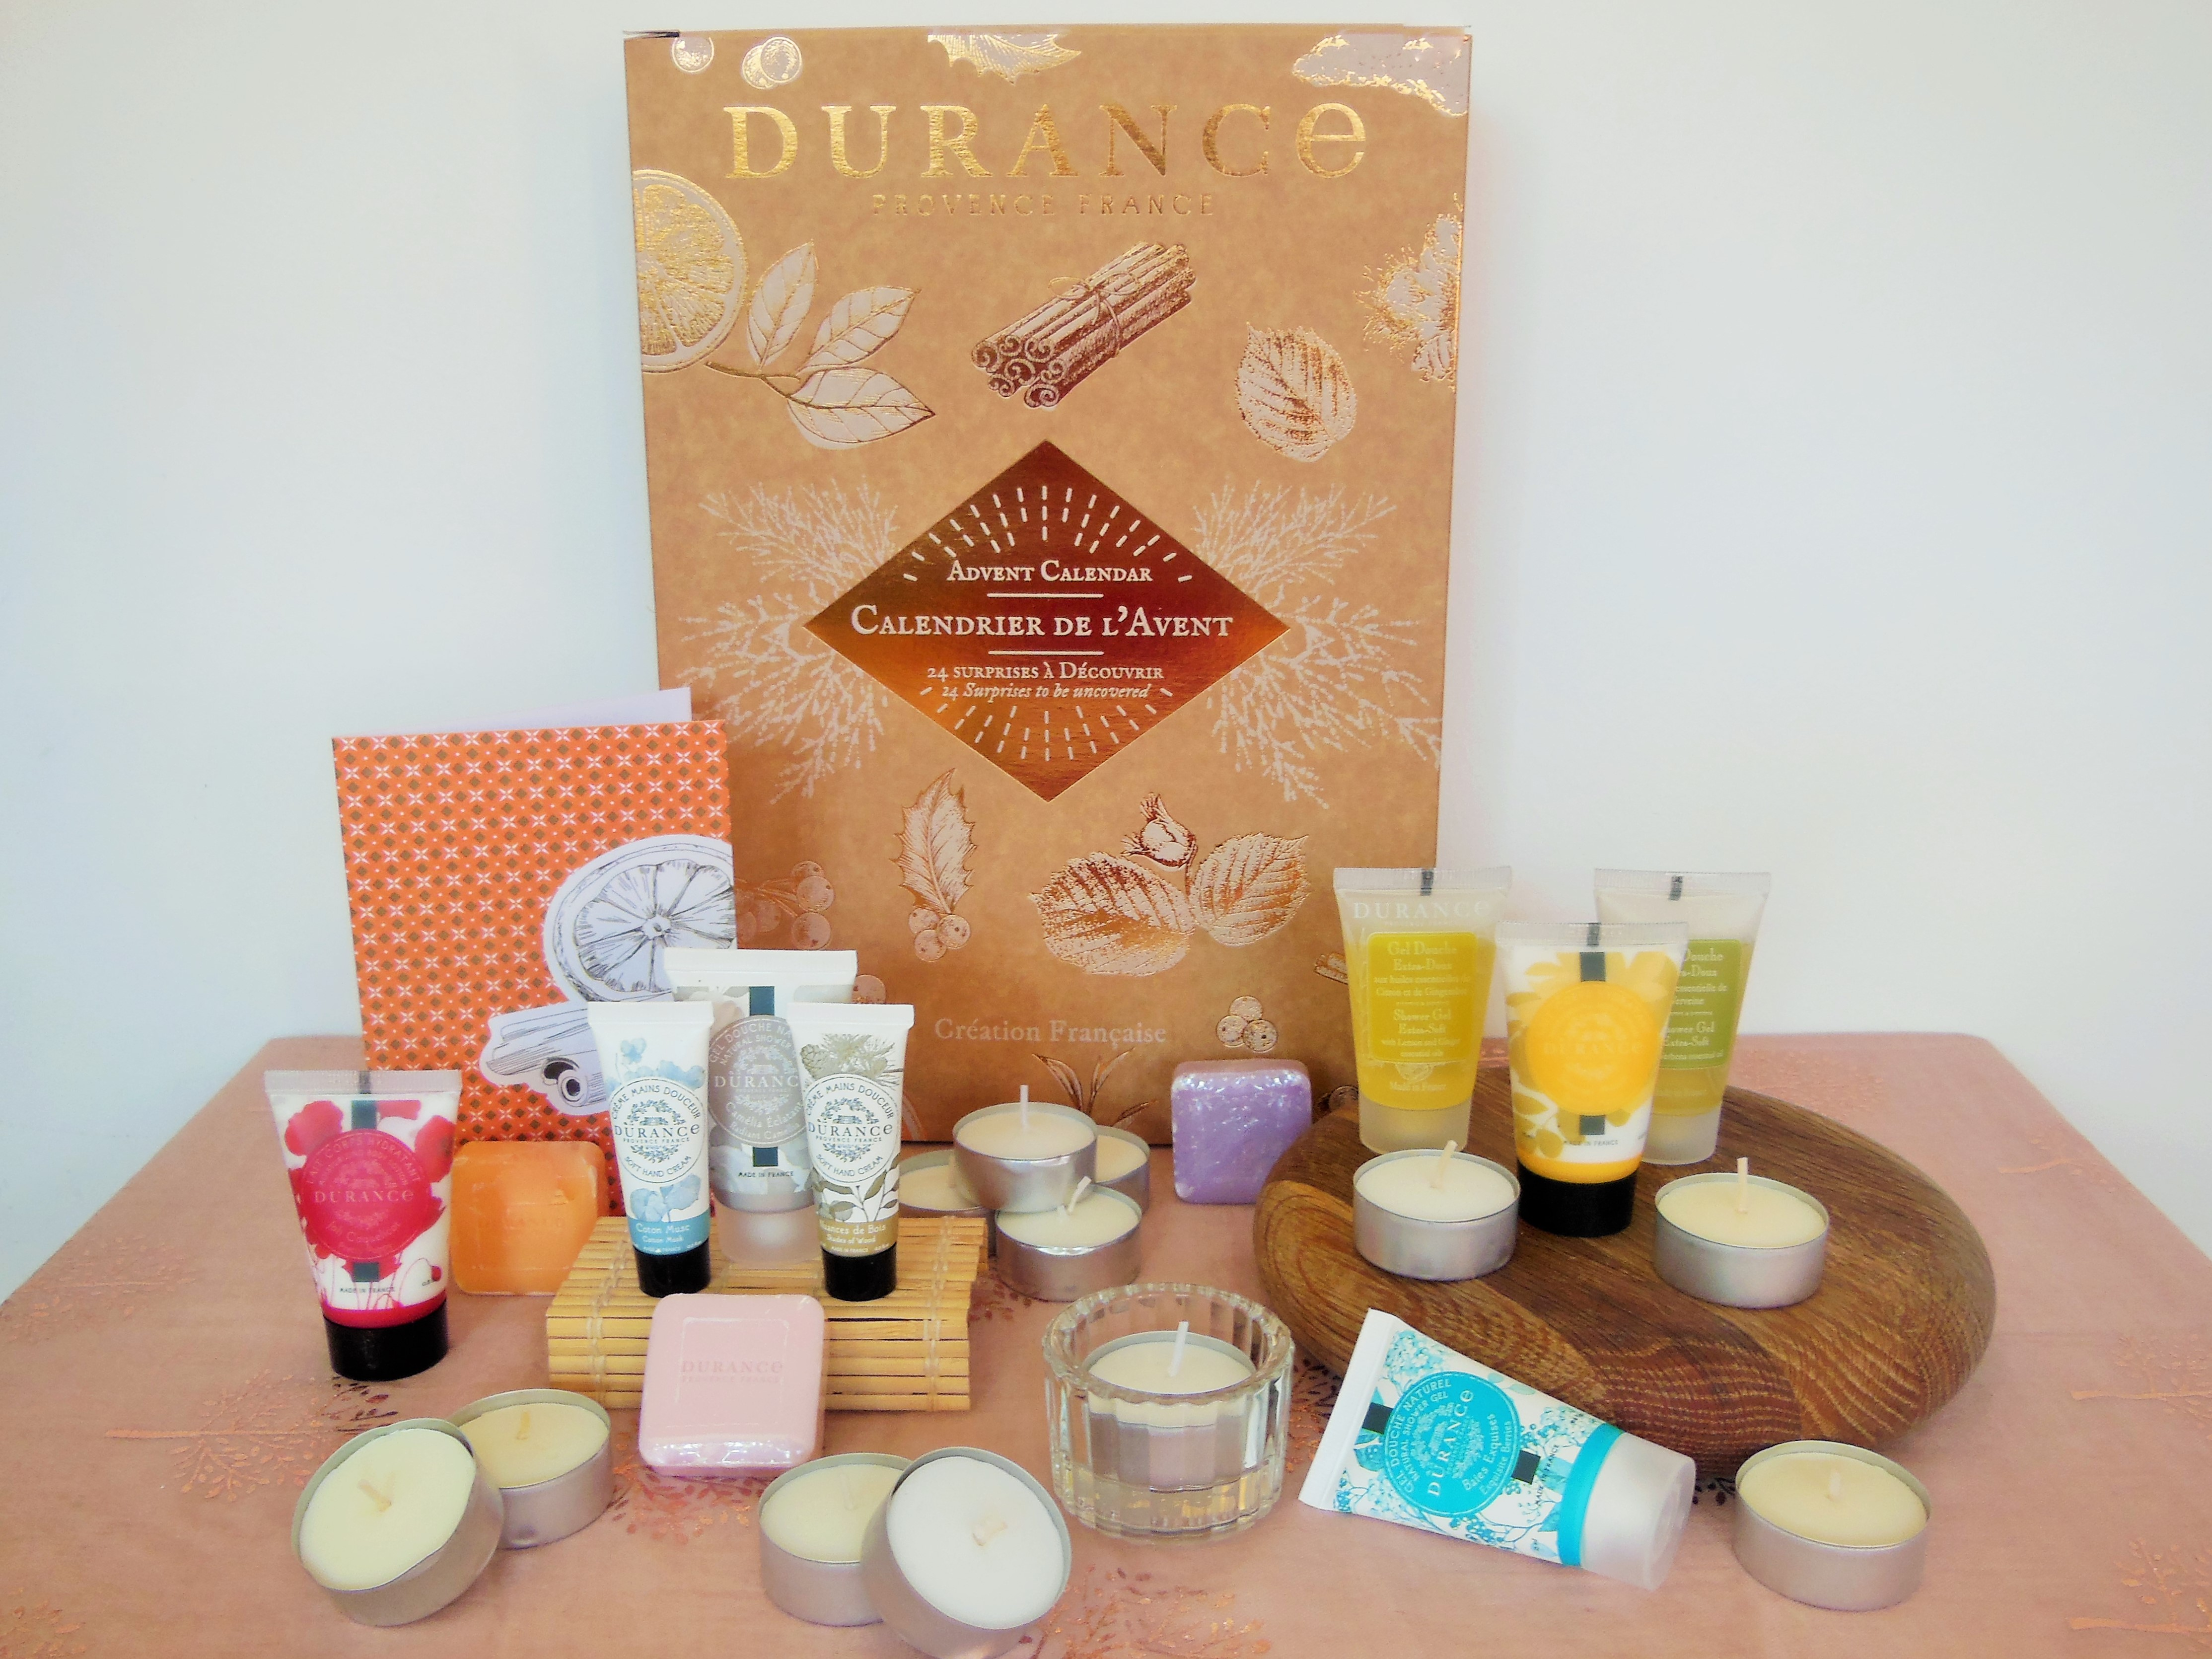 Calendrier Durance Durance Advent Calendar Review Fresh Beauty Fix